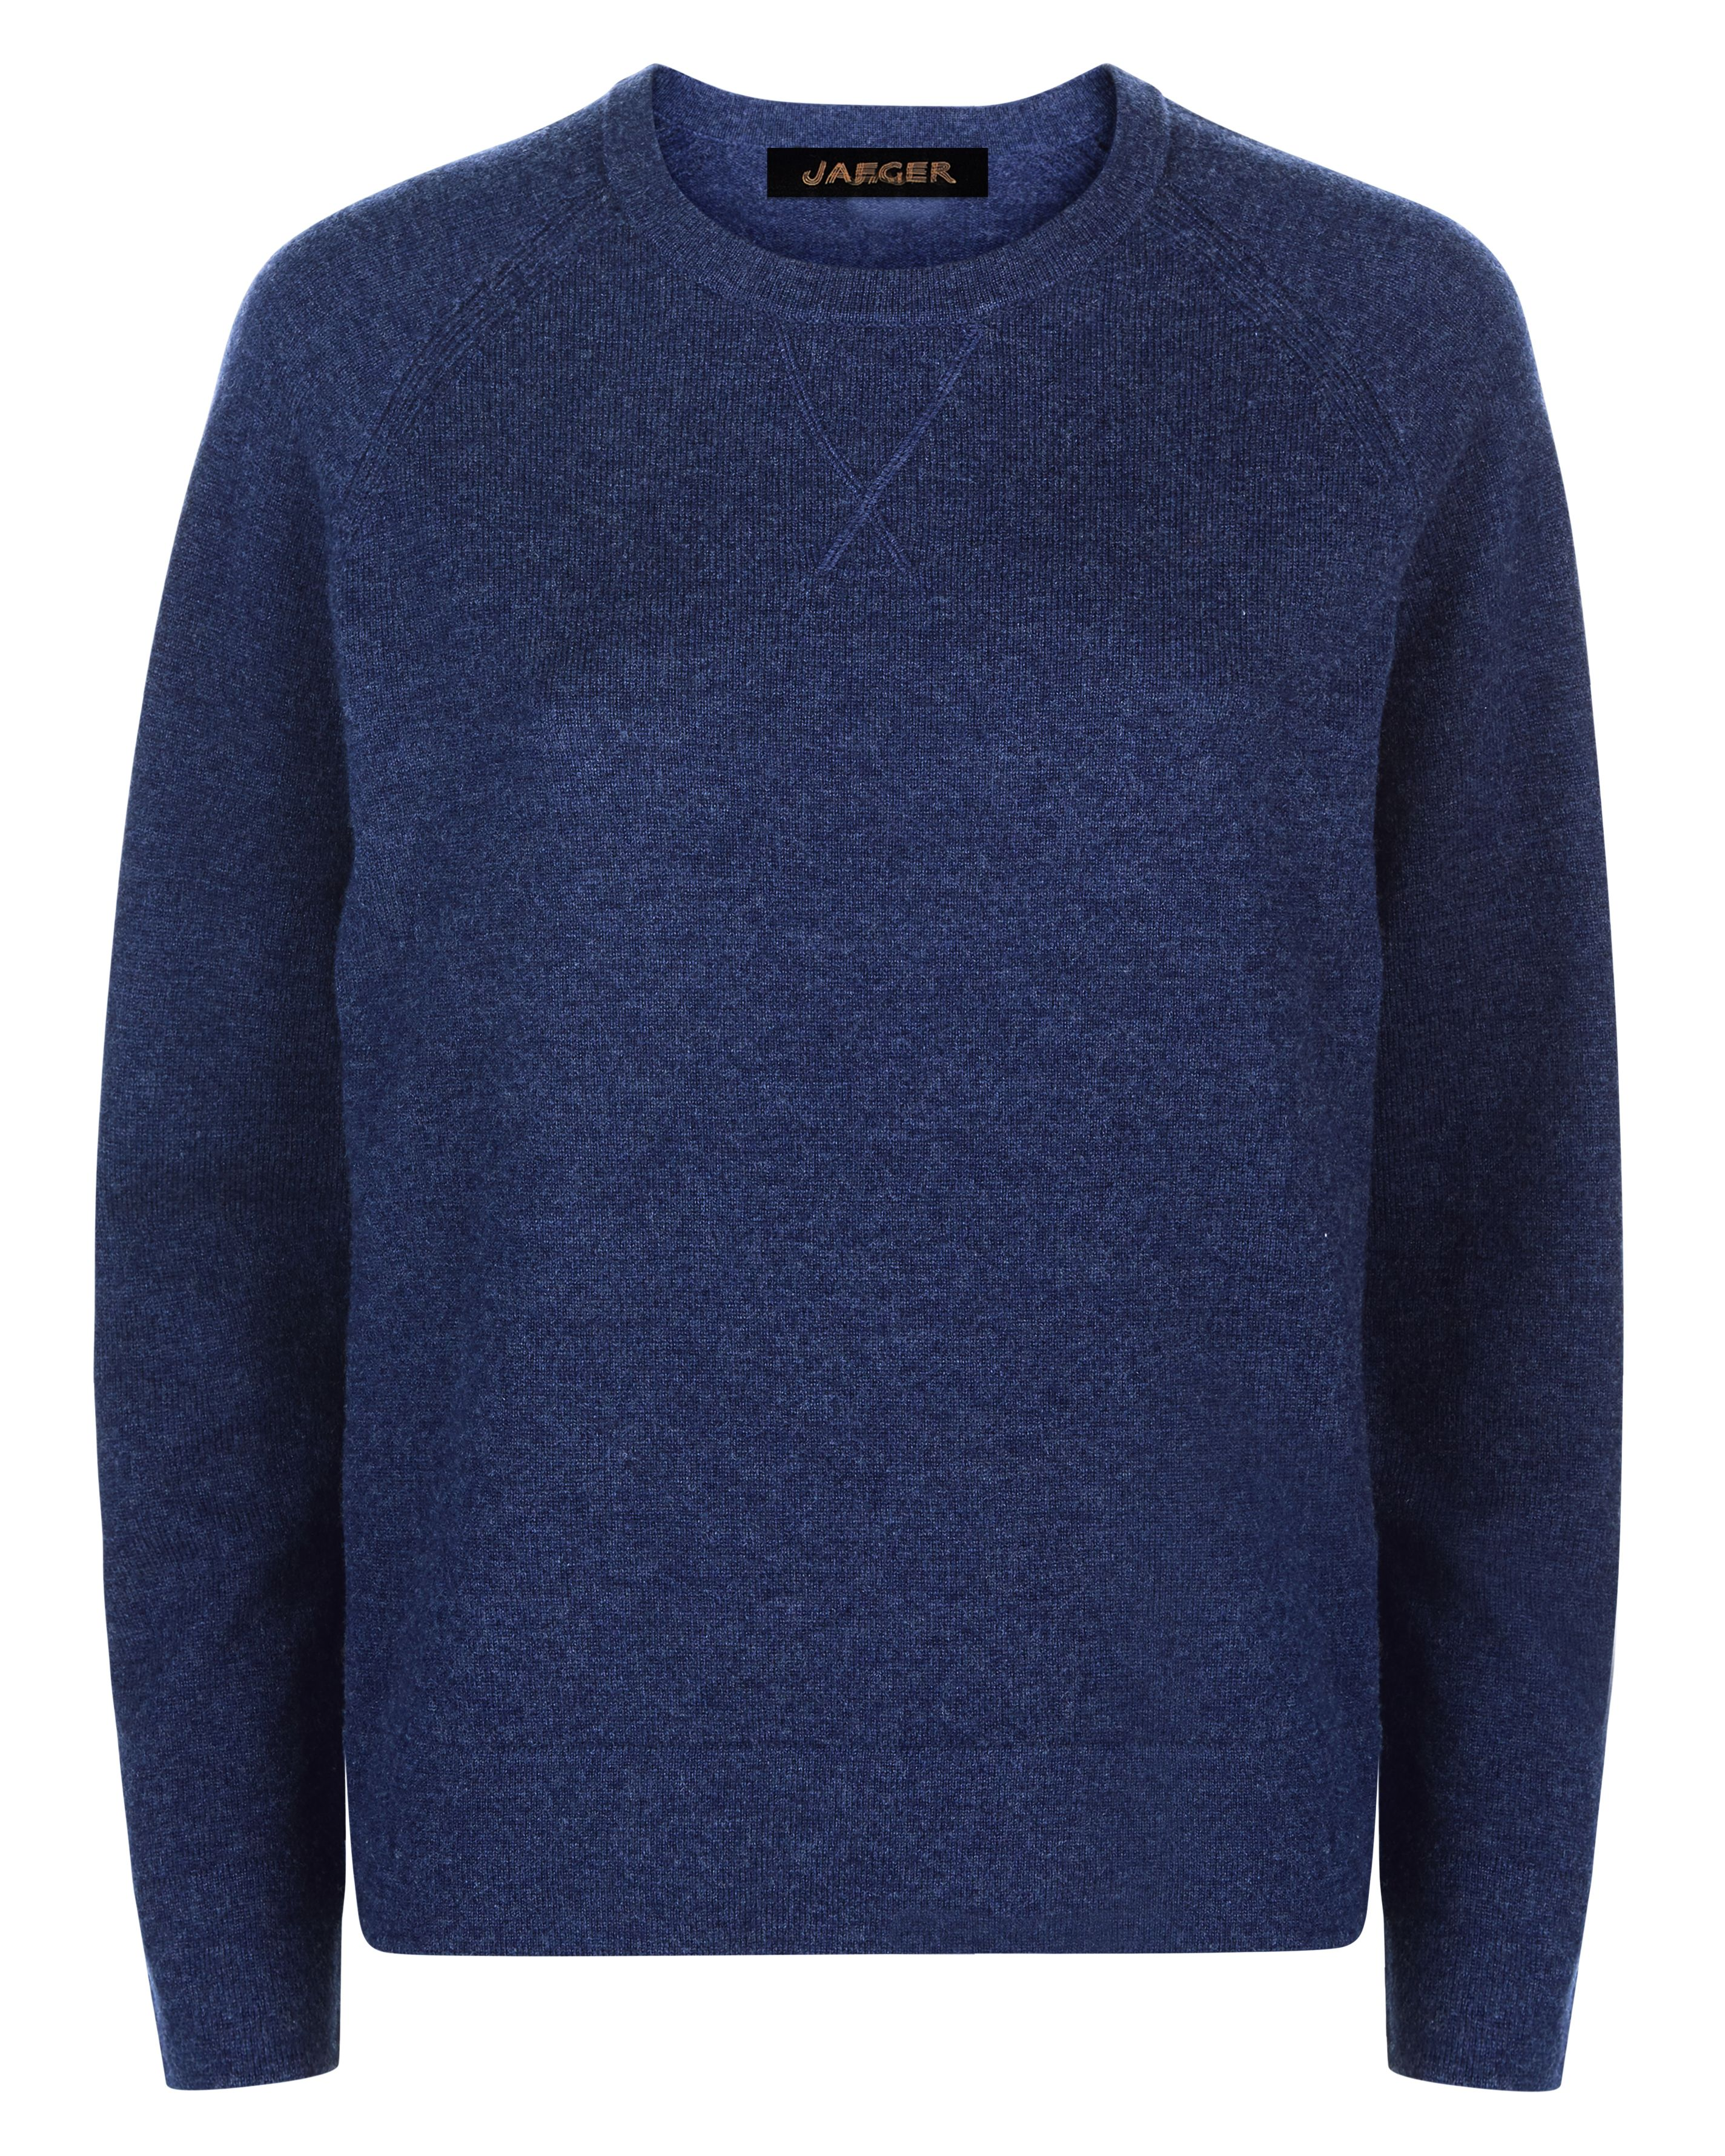 Jaeger Wool Crew Neck Sweater, Blue